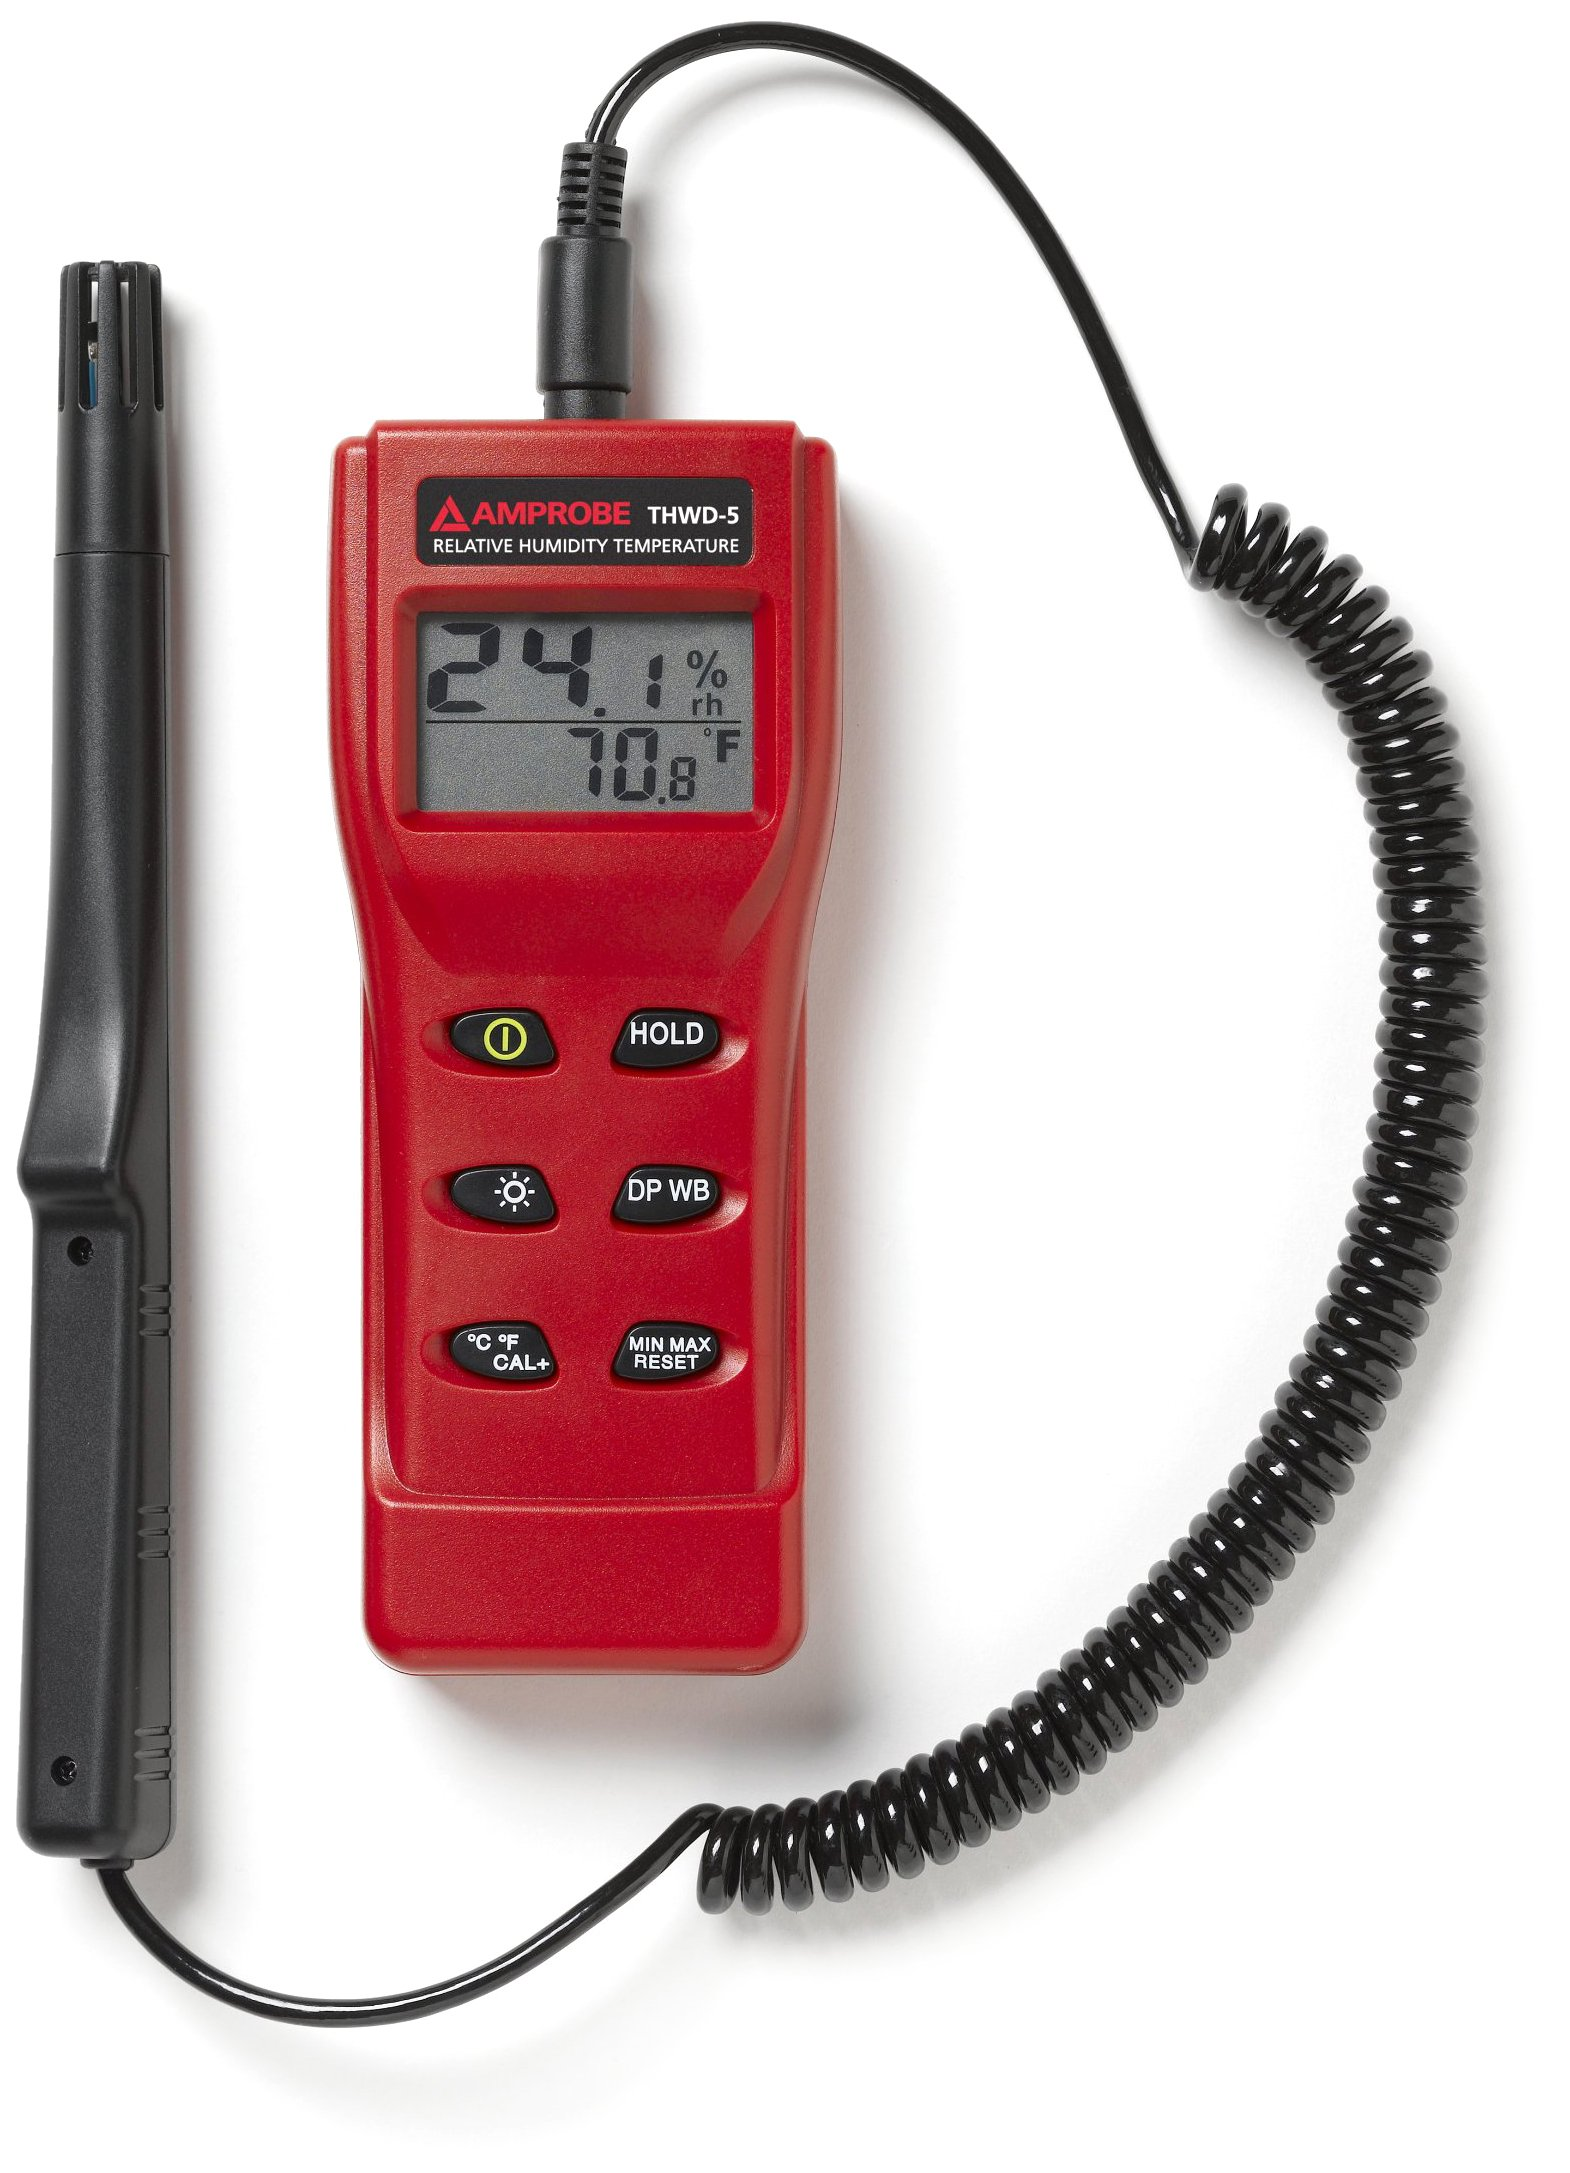 Amprobe THWD-5 Temperature and Relative Humidity Meter with Wet Bulb and Dew Point